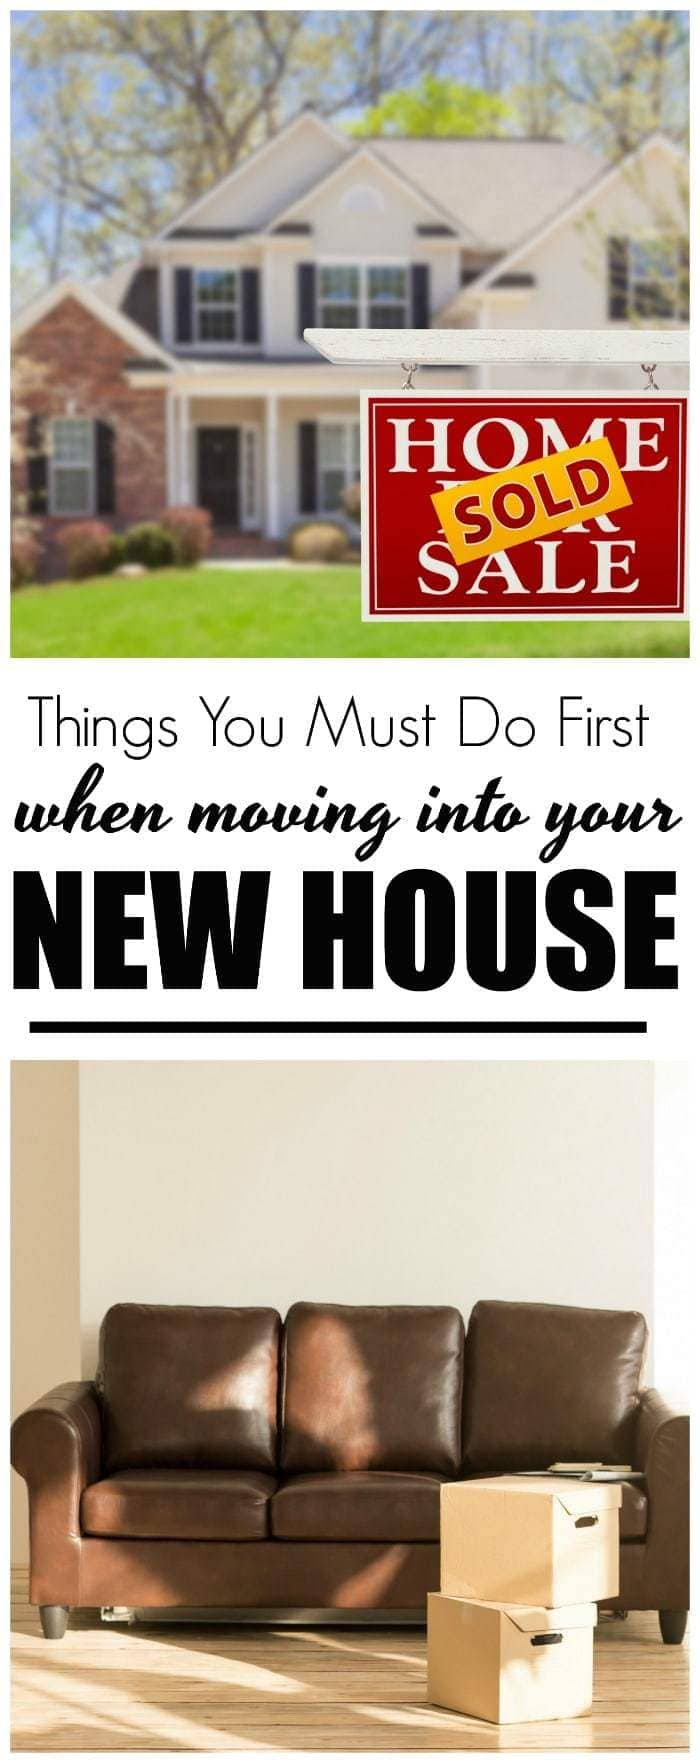 Becoming a brand new, first-time homeowner is such an exciting moment in your life. There's nothing quite as exciting as officially moving. Here is a checklist of things you need to do first after moving into your new house. #ad #NewHomeownersBBxx